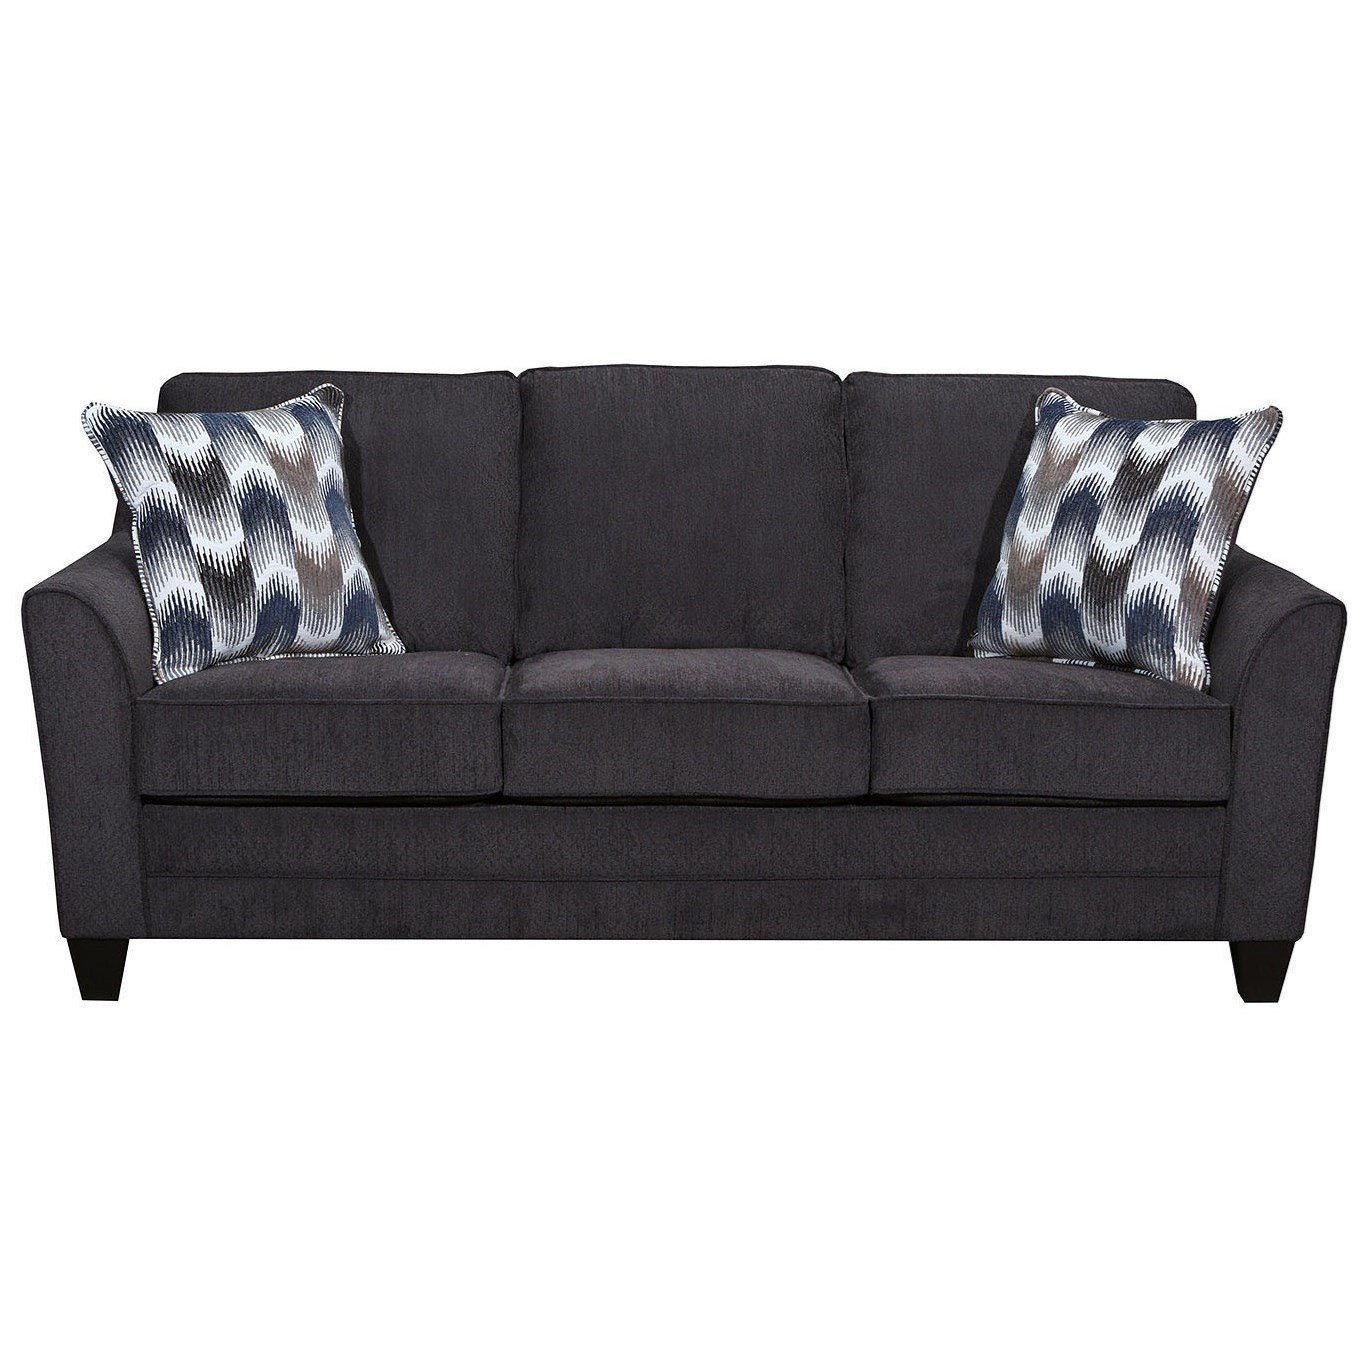 2013 Sofa by Lane at Powell's Furniture and Mattress